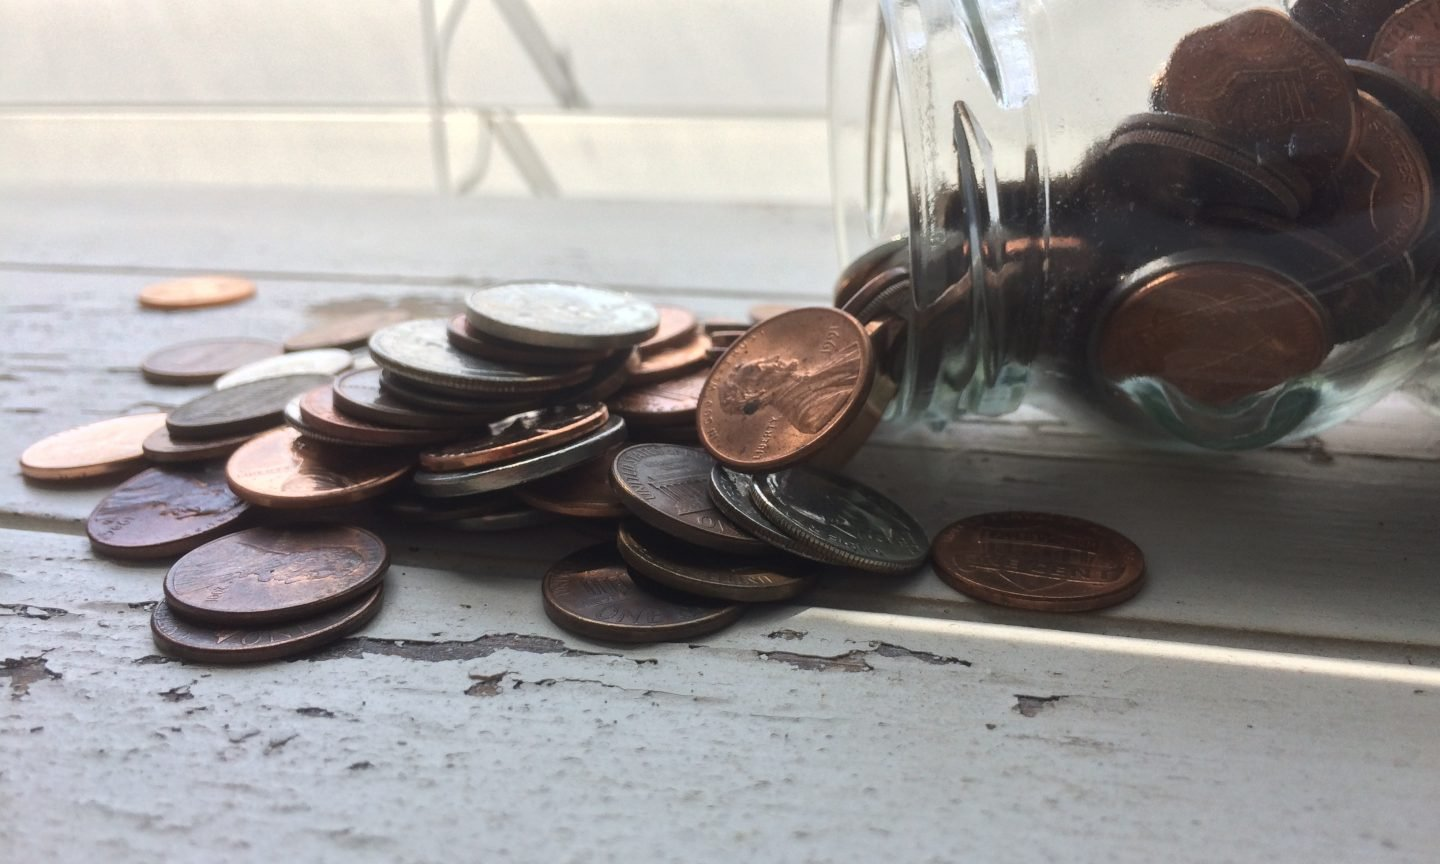 7 Signs You've Gone From Frugal to Cheap